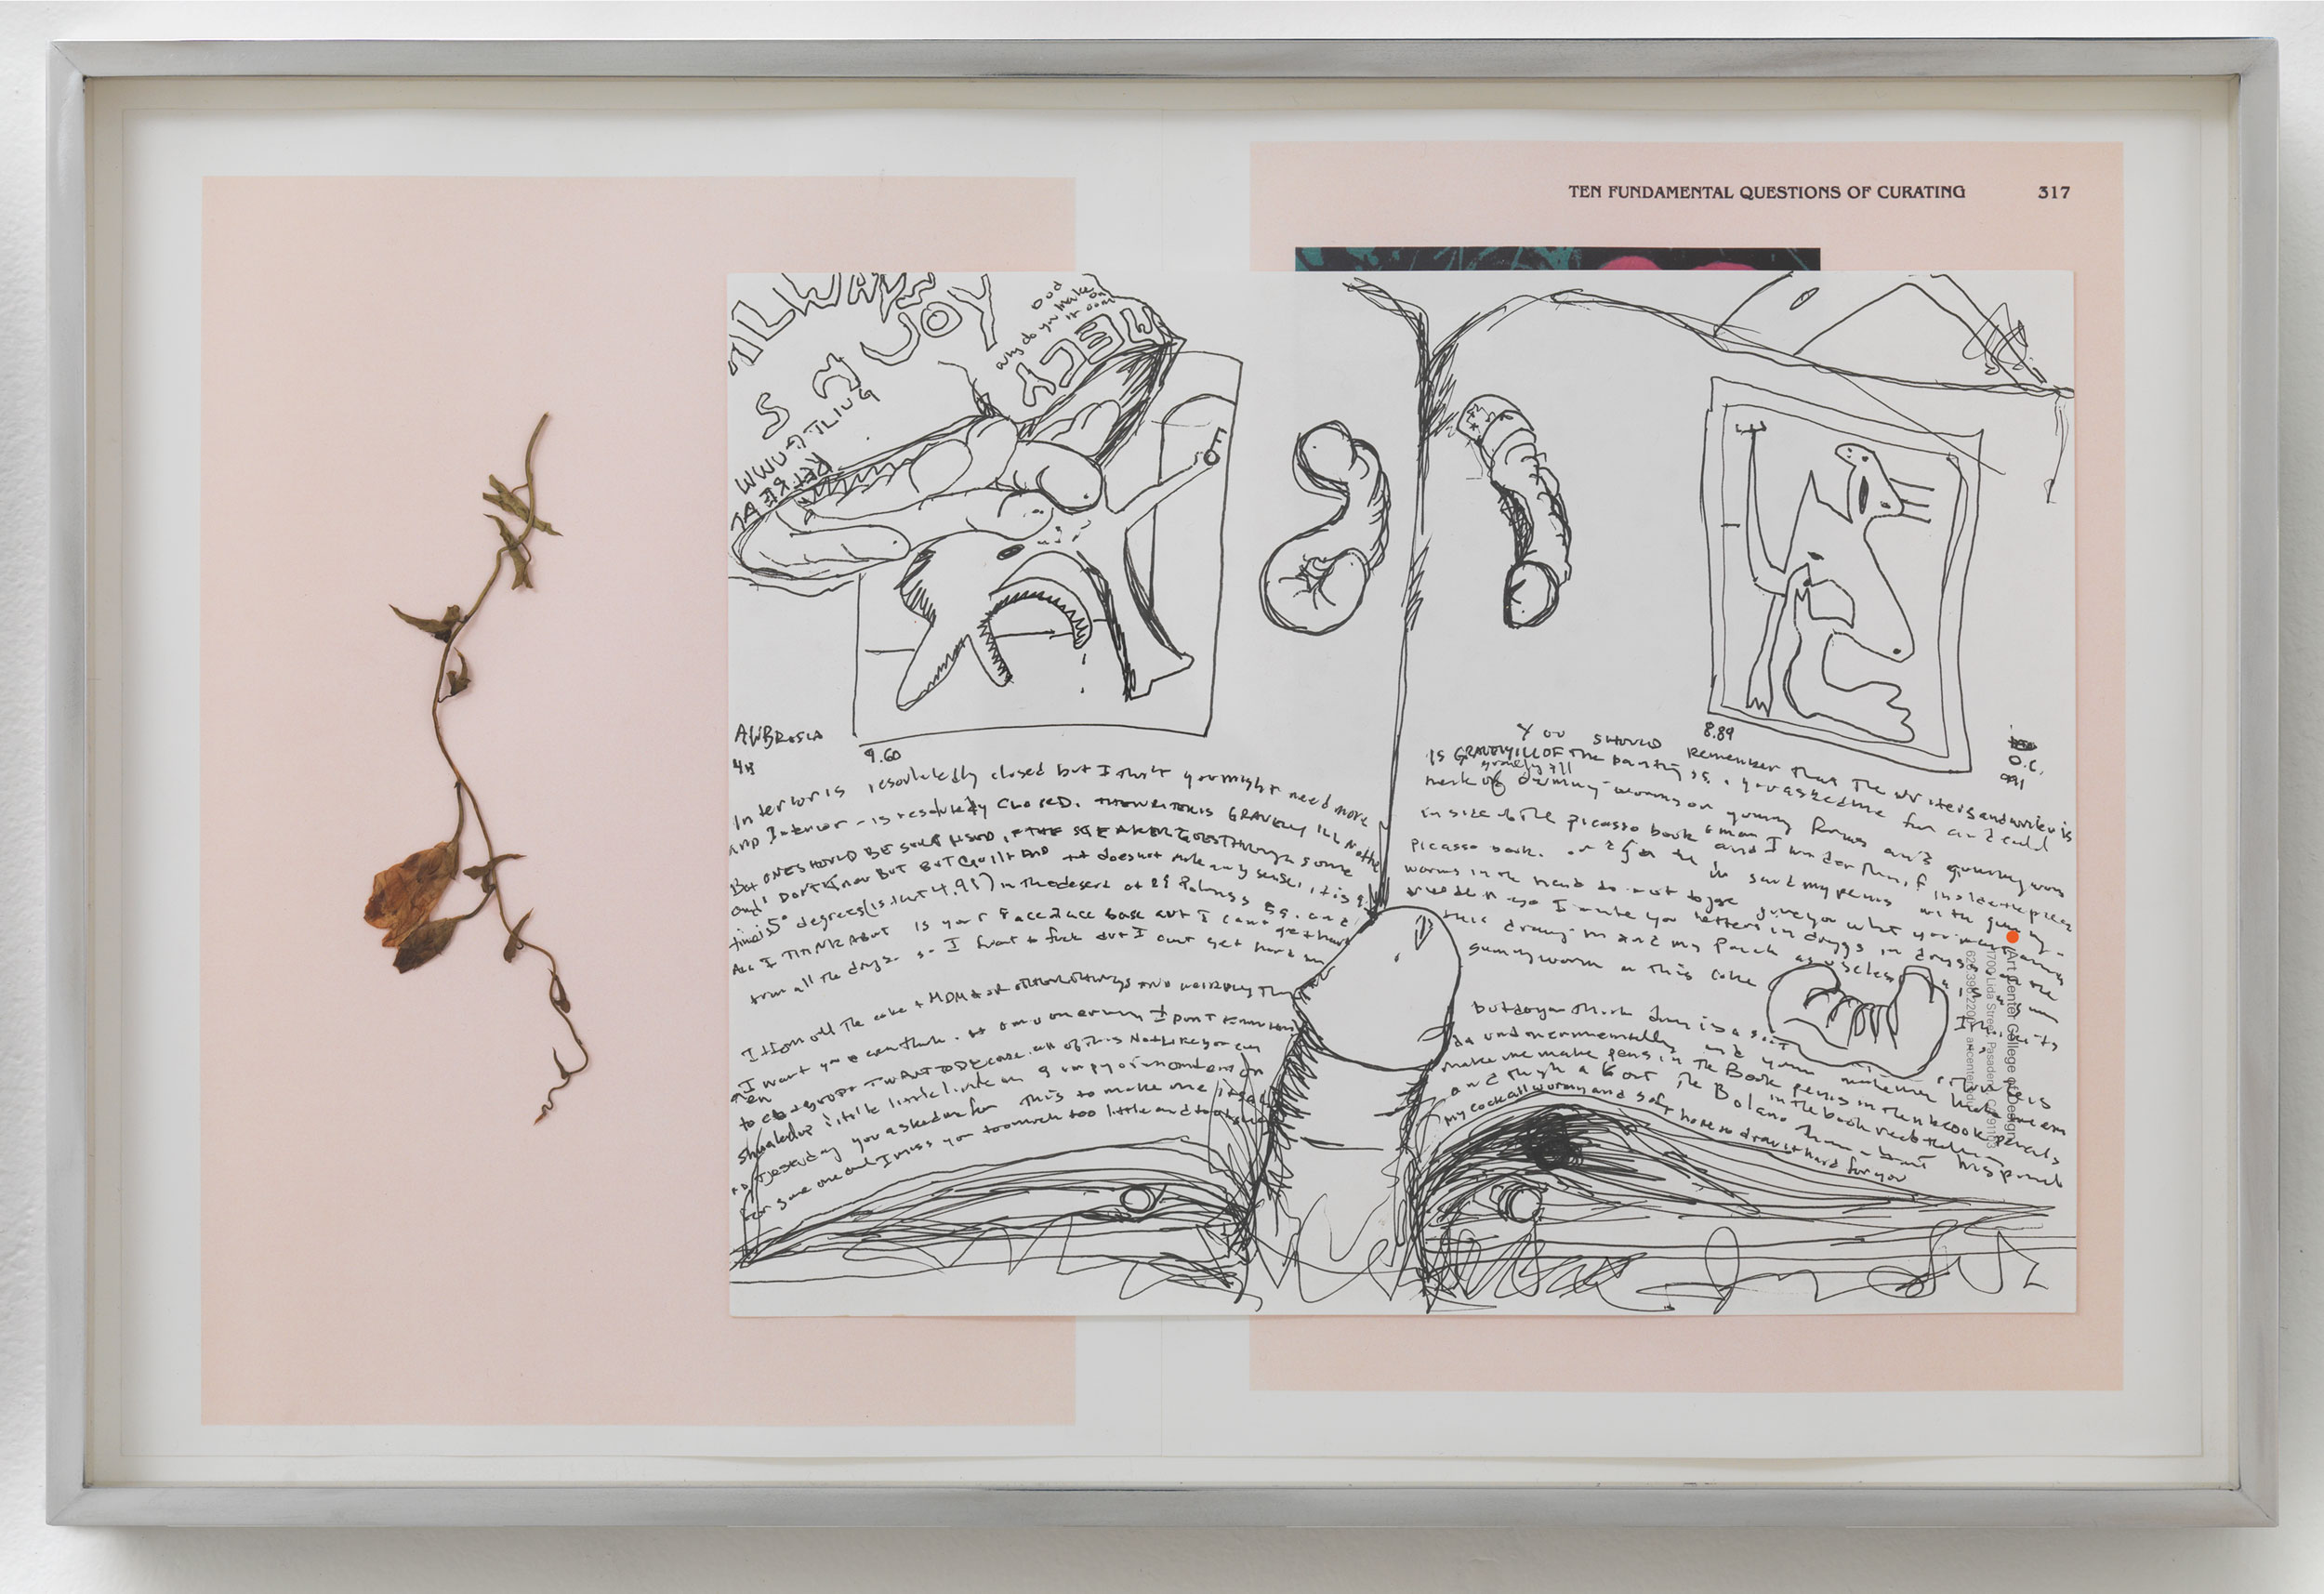 Picasso and Truth: From Cubism to Guernica II    2014   Ink on paper, dried flower, paper  12 x 18 inches   Drawings, 2014–